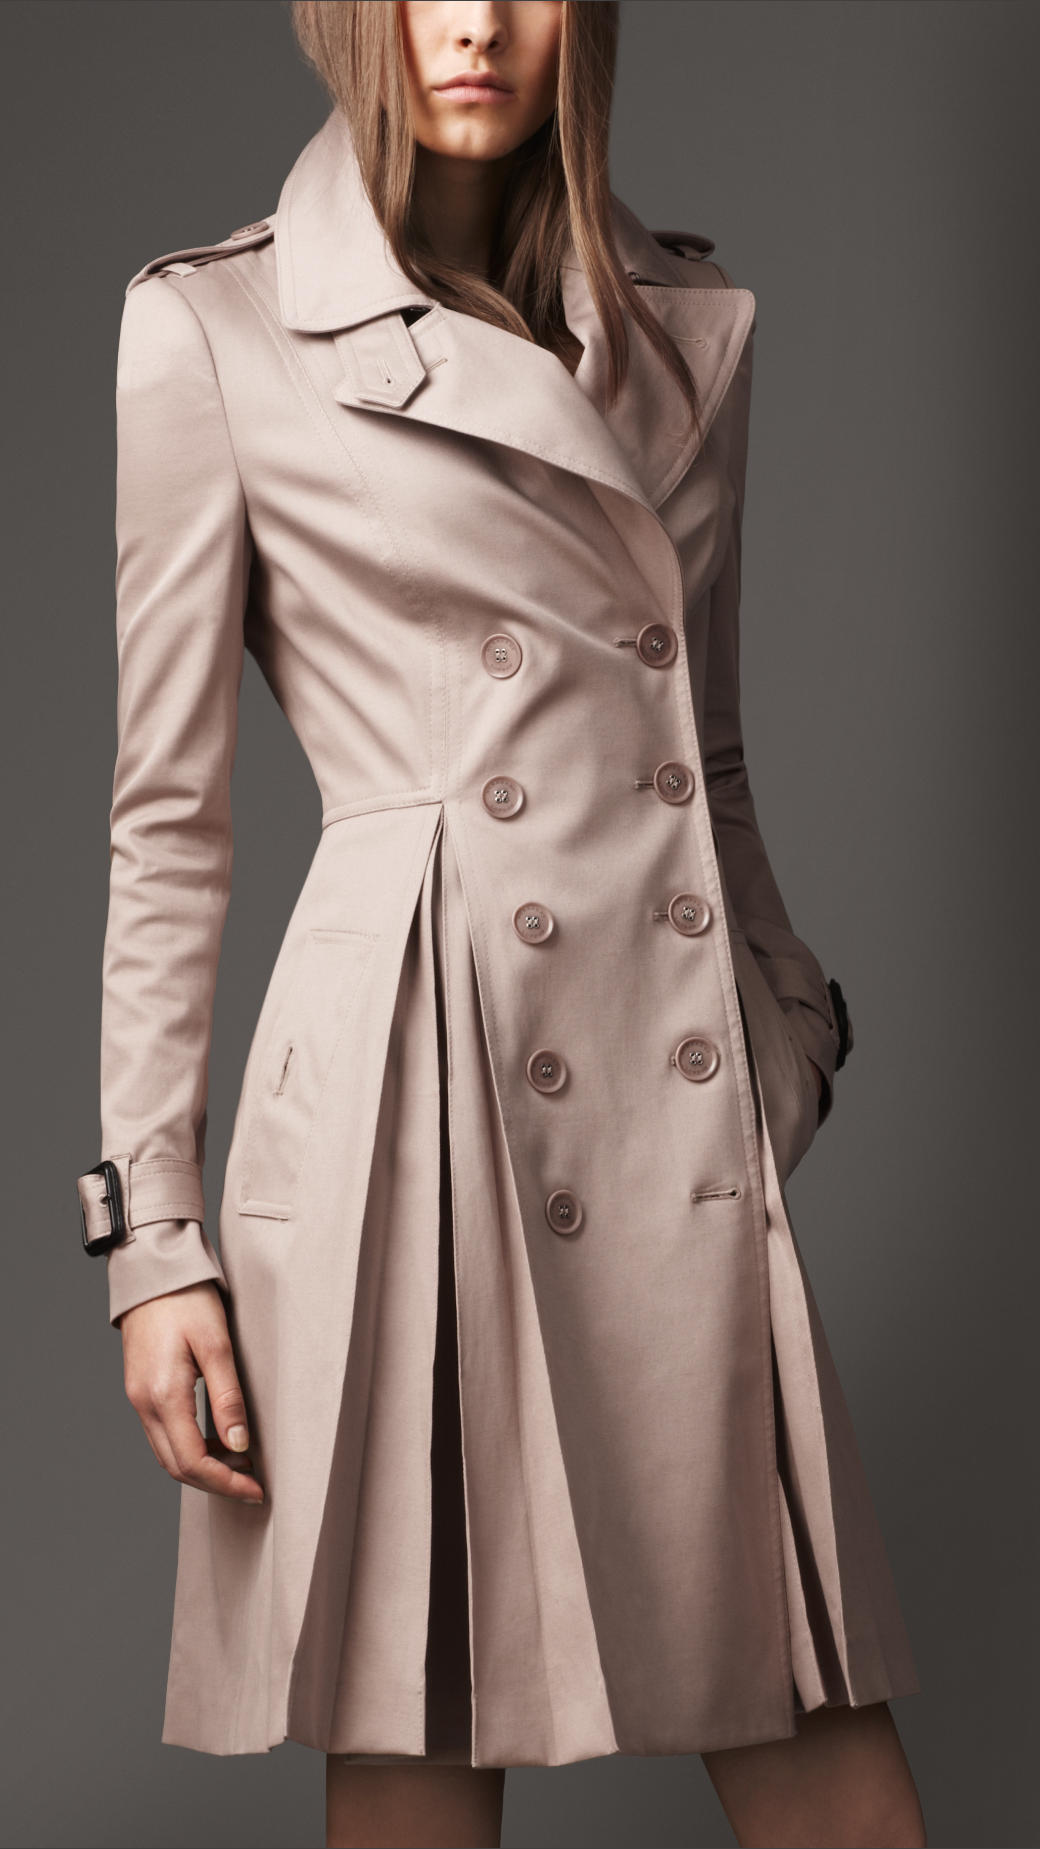 burberry long full skirt stretch cotton trench coat in. Black Bedroom Furniture Sets. Home Design Ideas